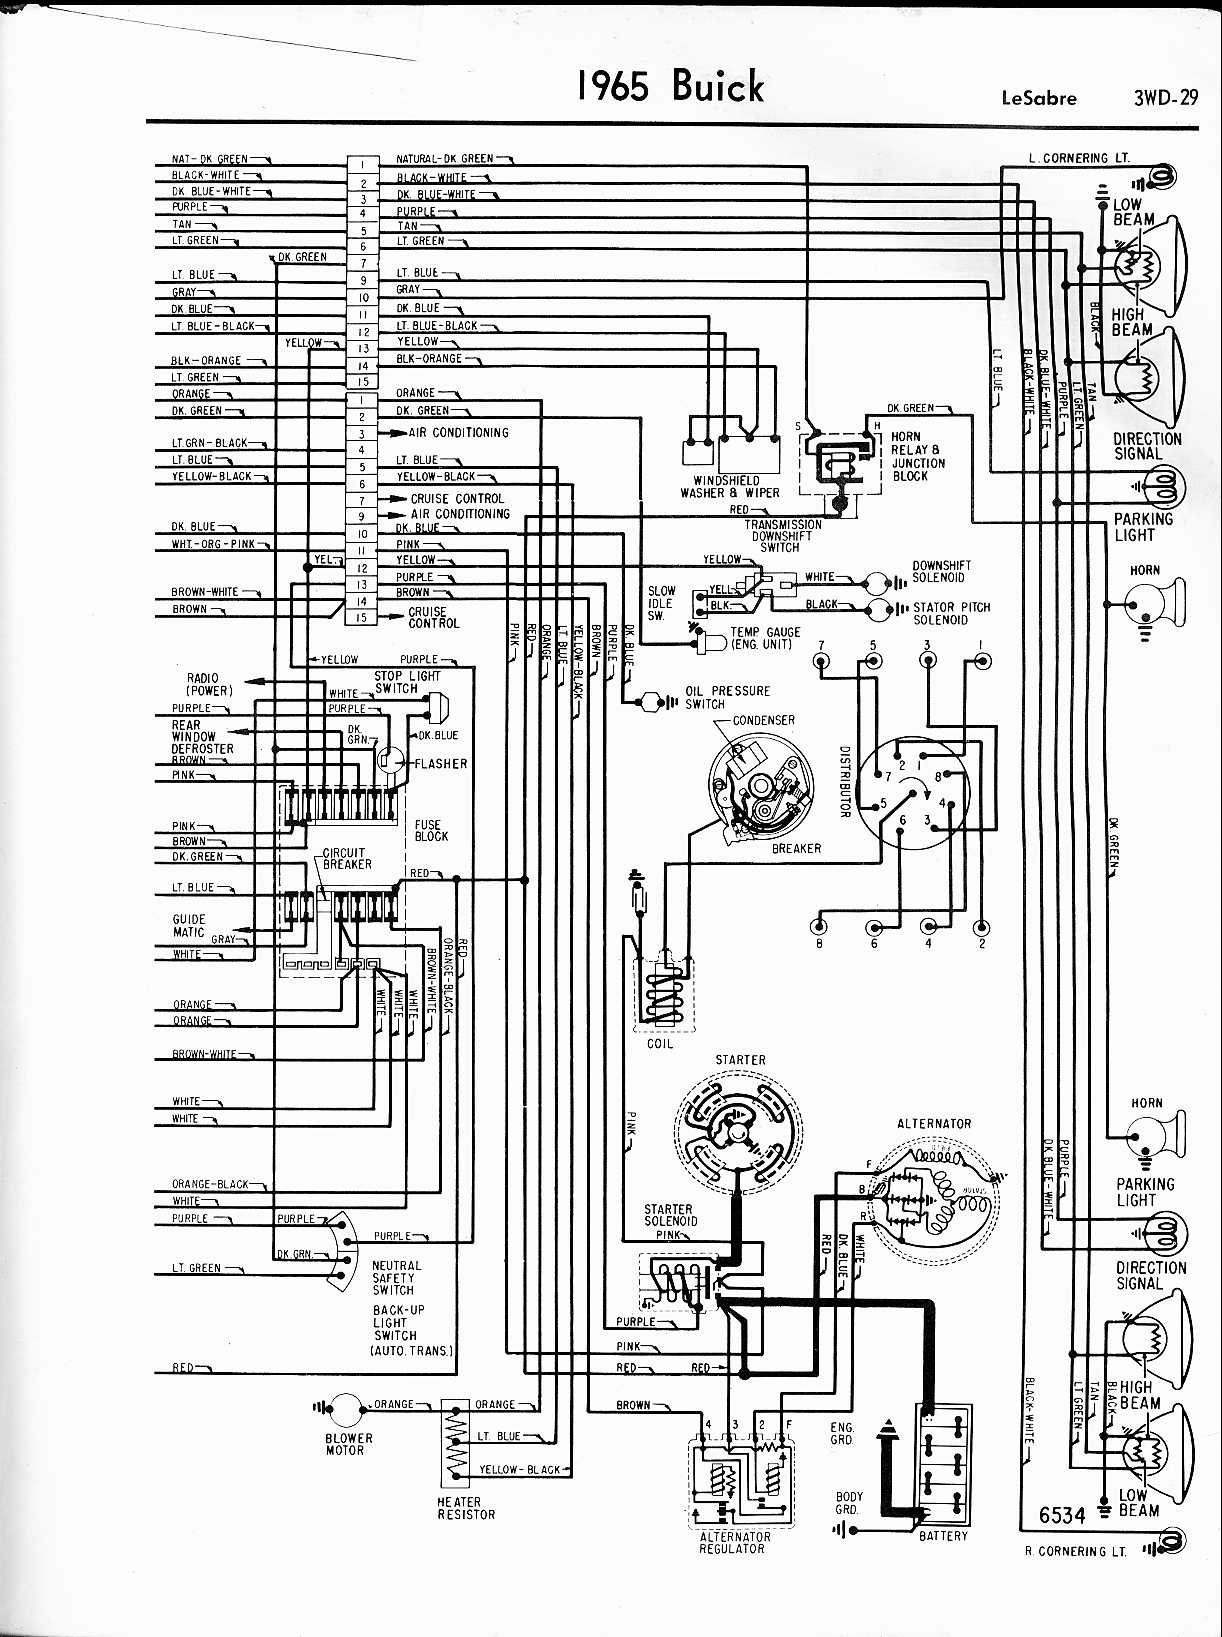 1997 Buick Lesabre Ignition Diagram | Wiring Diagram - 2000 Honda Accord Radio Wiring Diagram